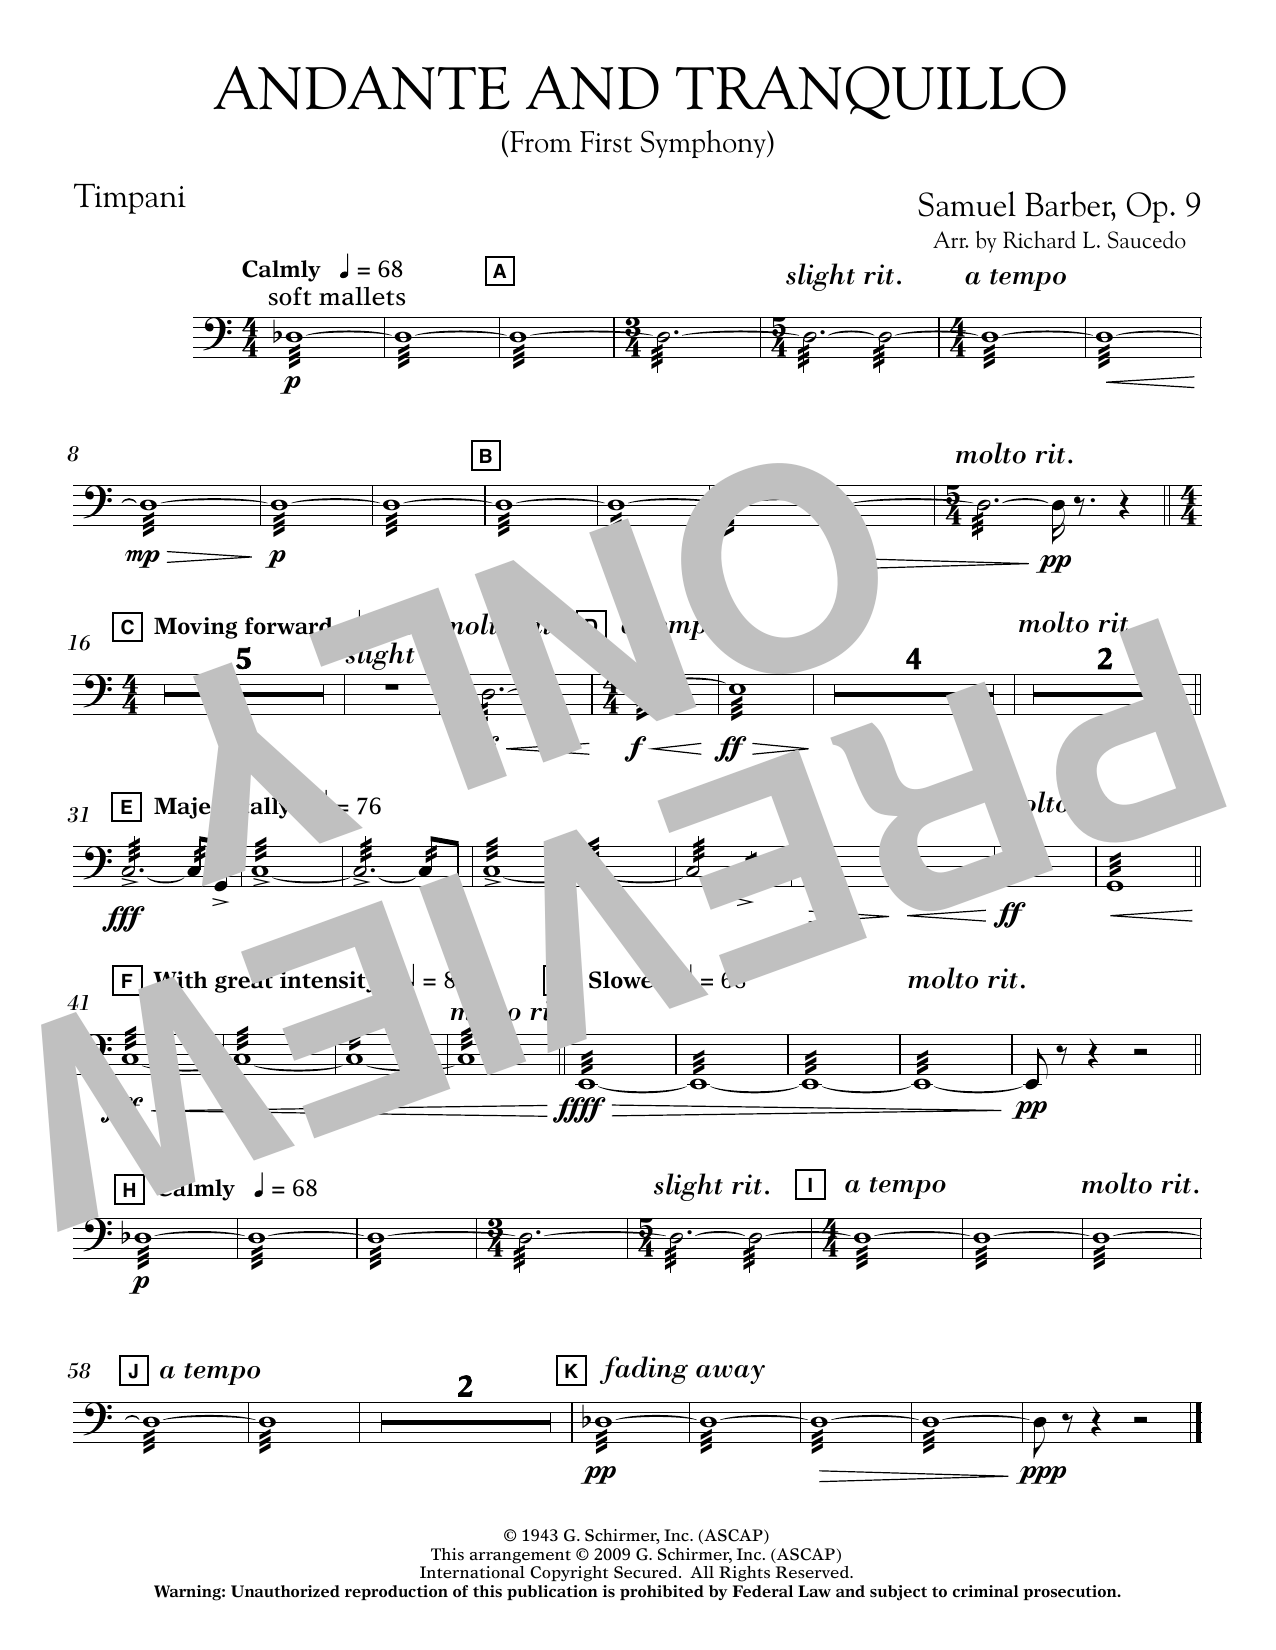 Andante and Tranquillo (from First Symphony) - Timpani Sheet Music